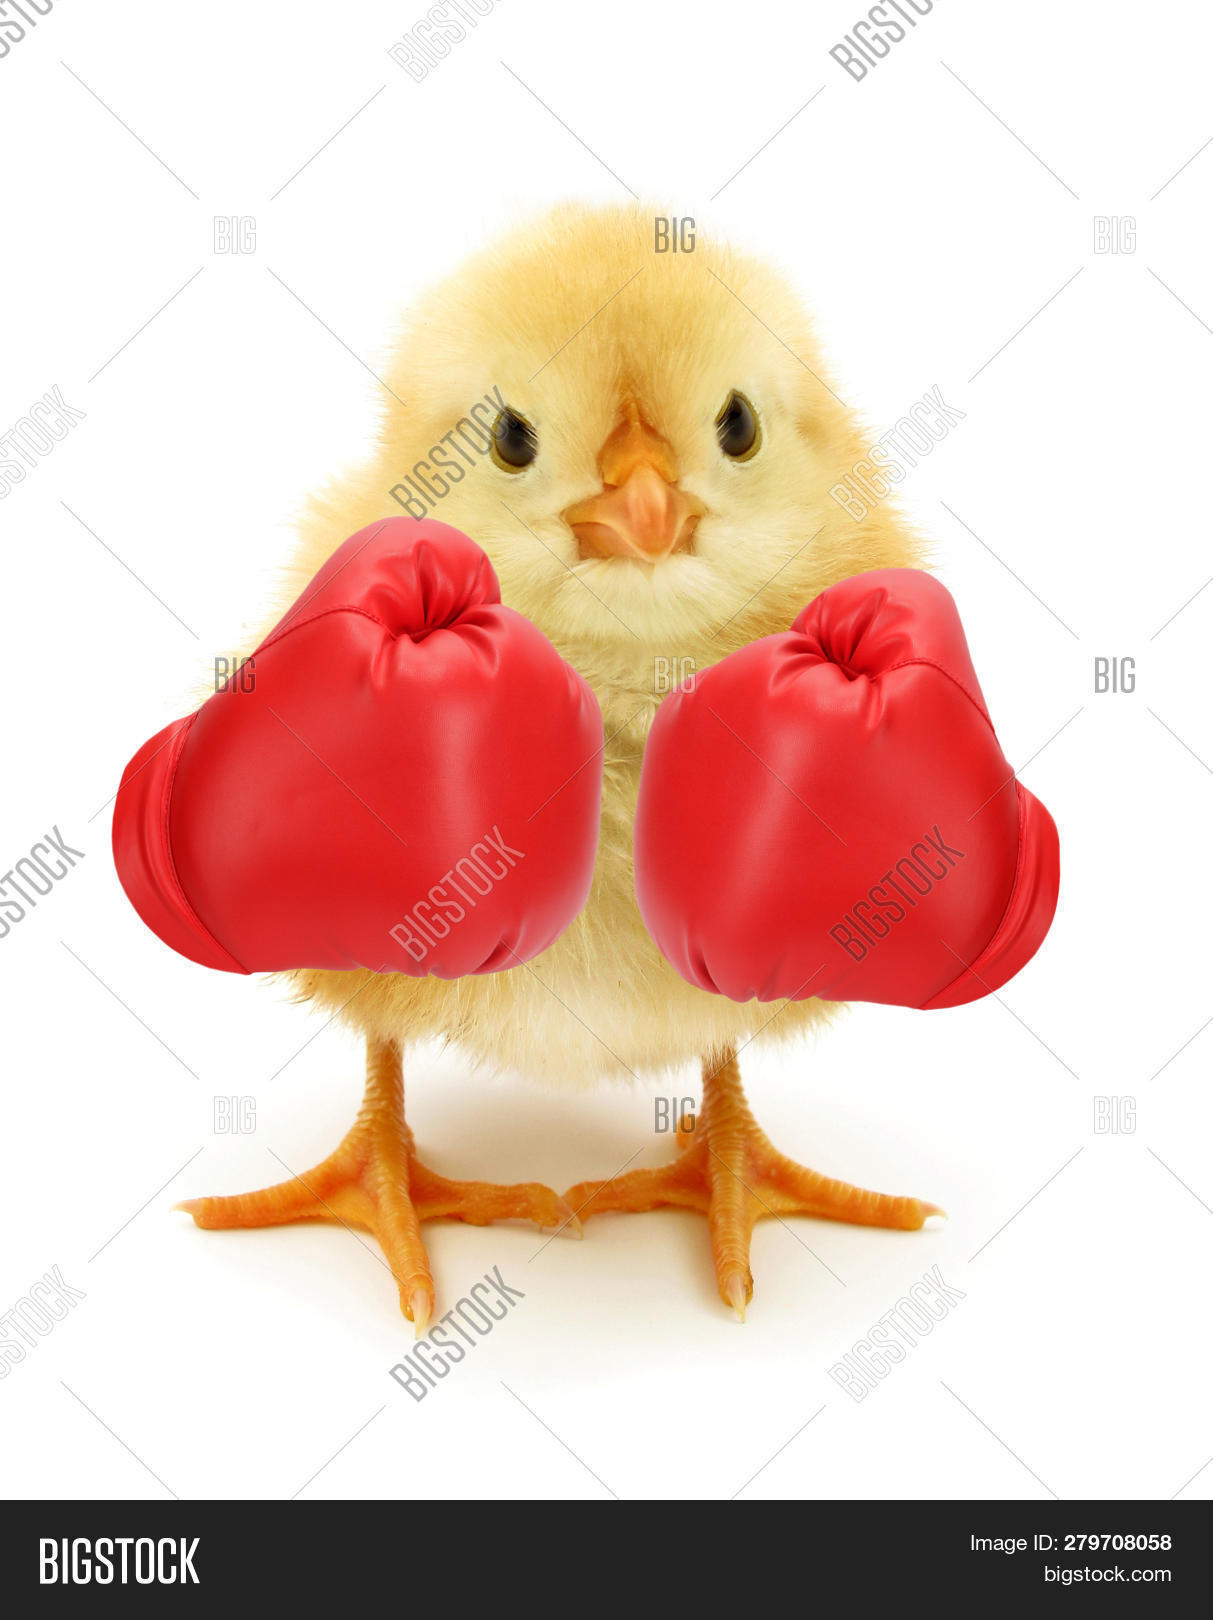 aggressive,angry,animal,baby animal,baby animals,baby bird,background,bird,boxer,boxing,champion,chick,chicken,competitive,concept,crazy,crazy chick,crazy chicken,cut out,cute,fight,fluffy,fun,funny,genetically,gmo chick,gmo chicken,hilarious,humor,idea,isolated,joke,little,lunatic,mad,modified,newborn,on white,poster,red,small,sport,strength,struggle,surprise,unusual,vertical,white,white background,yellow